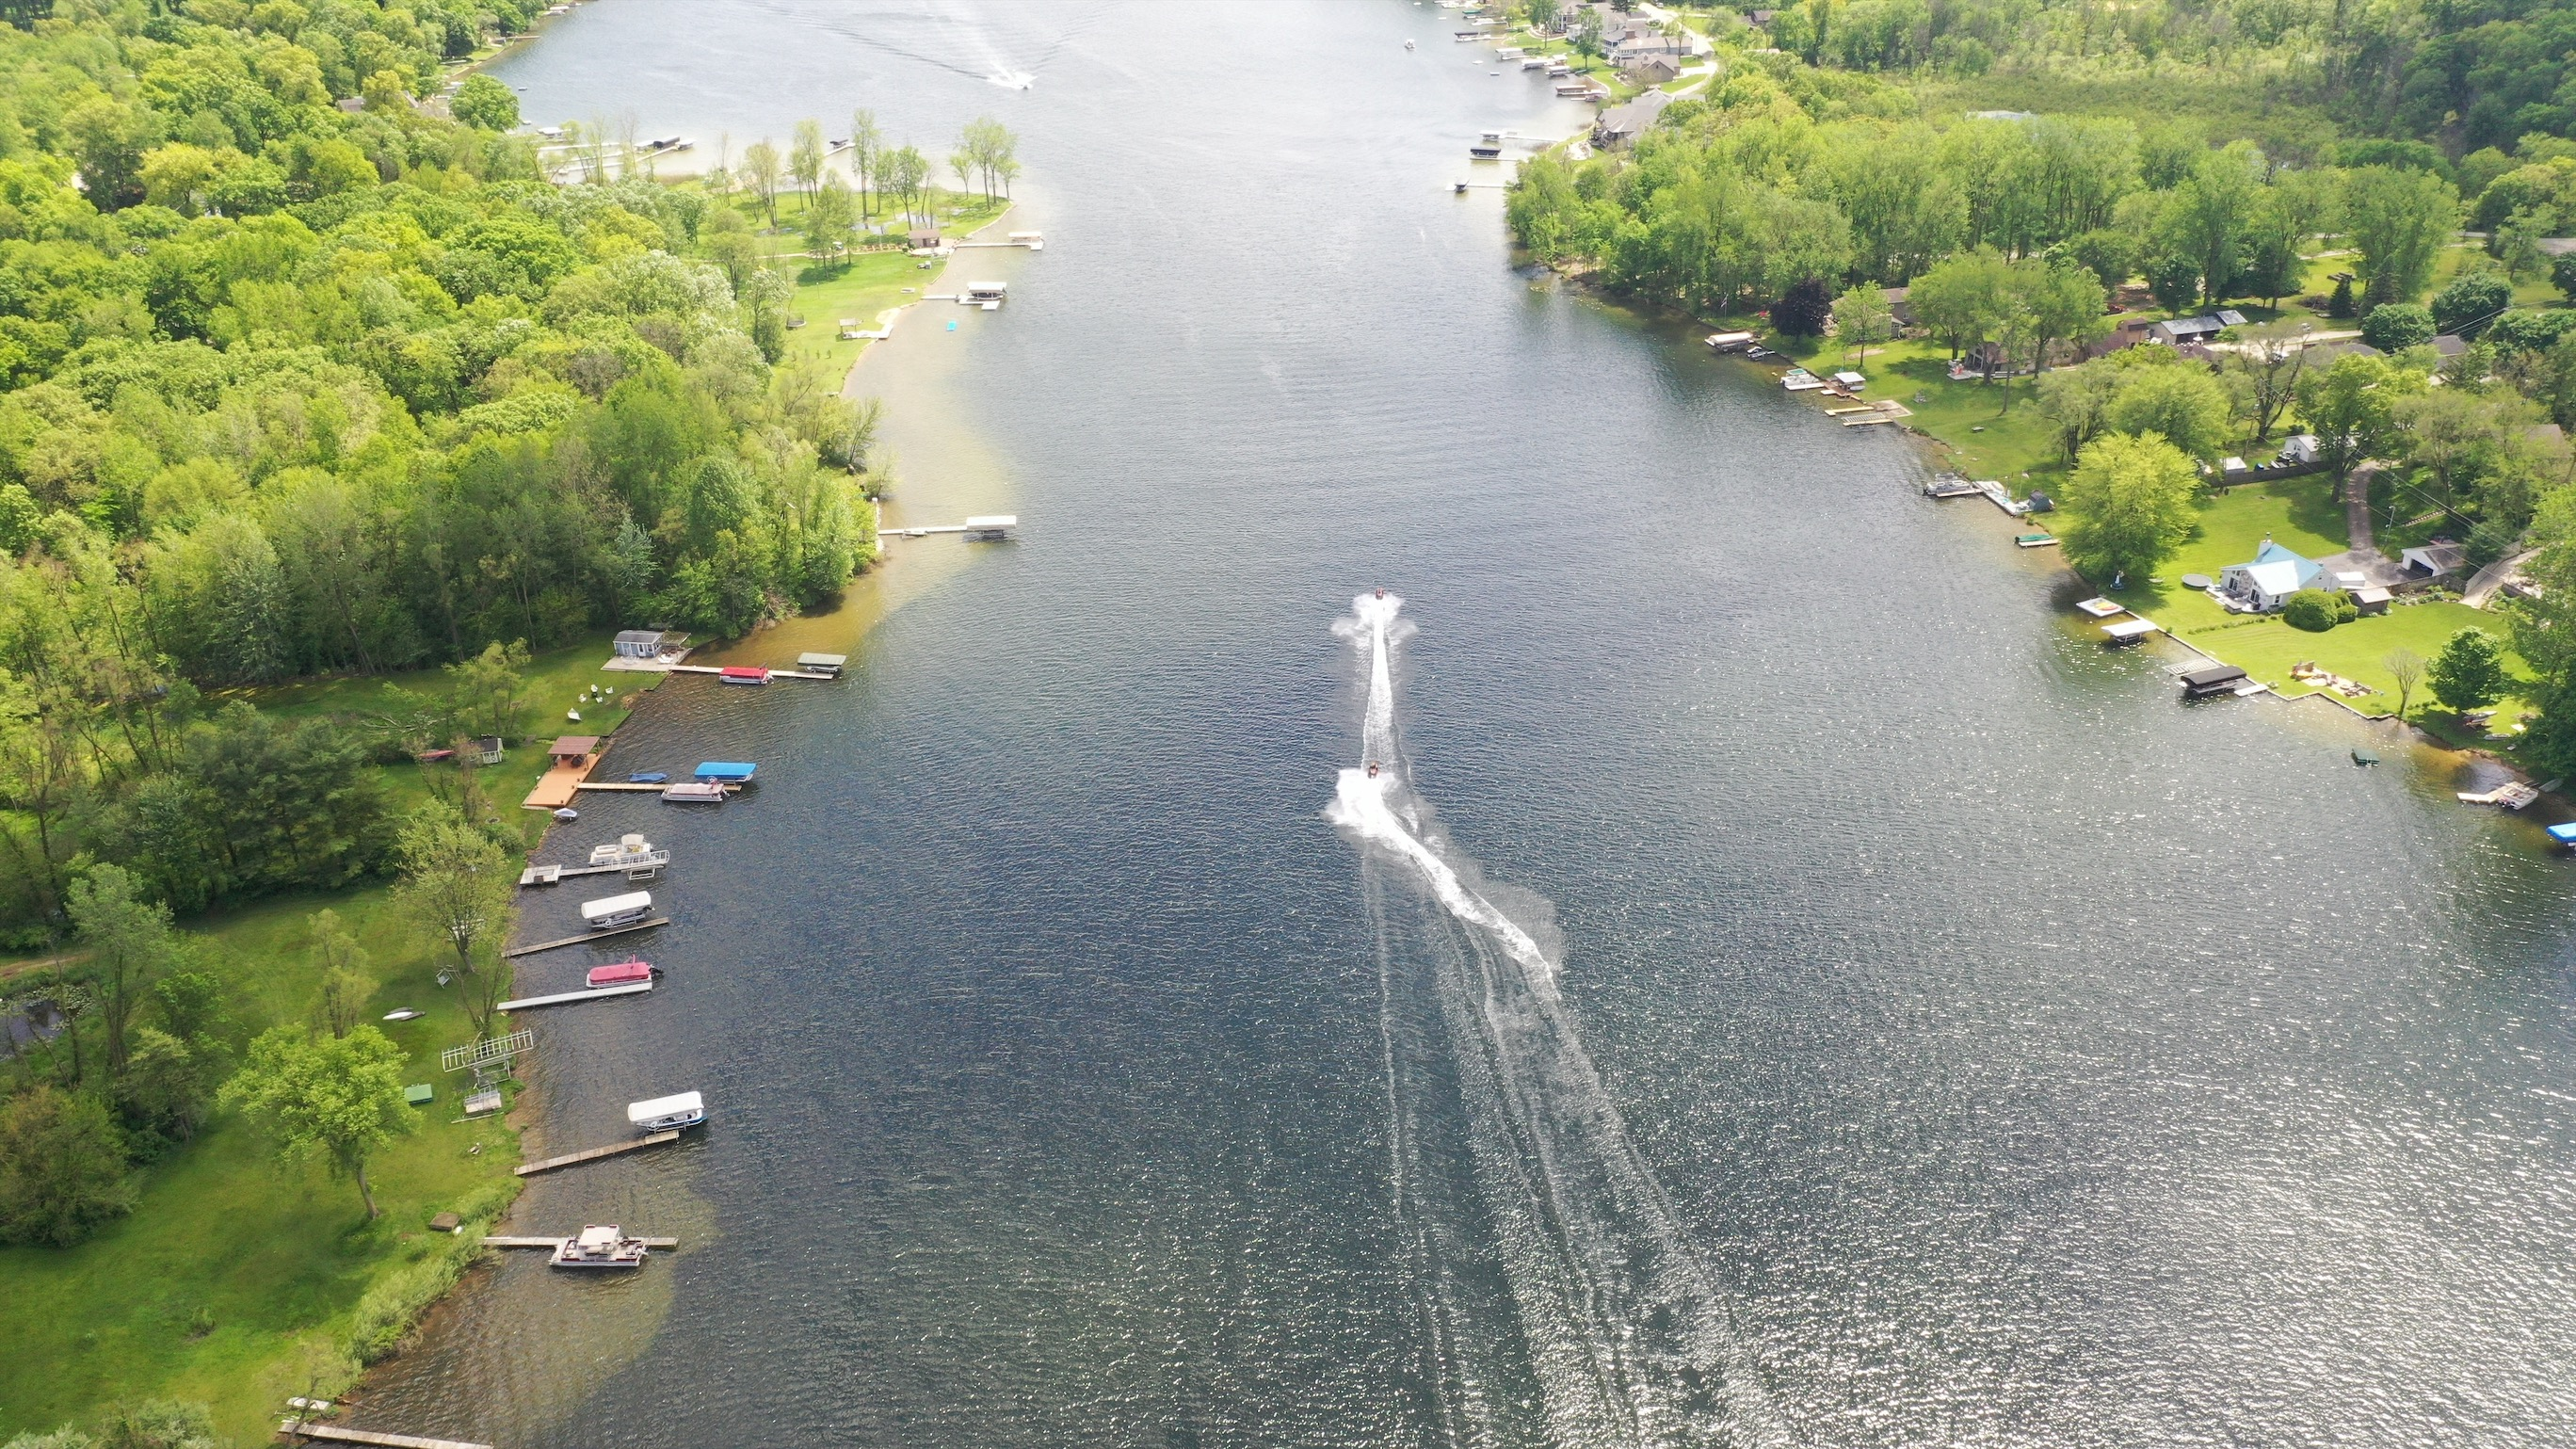 Speed Boats Drone Shot